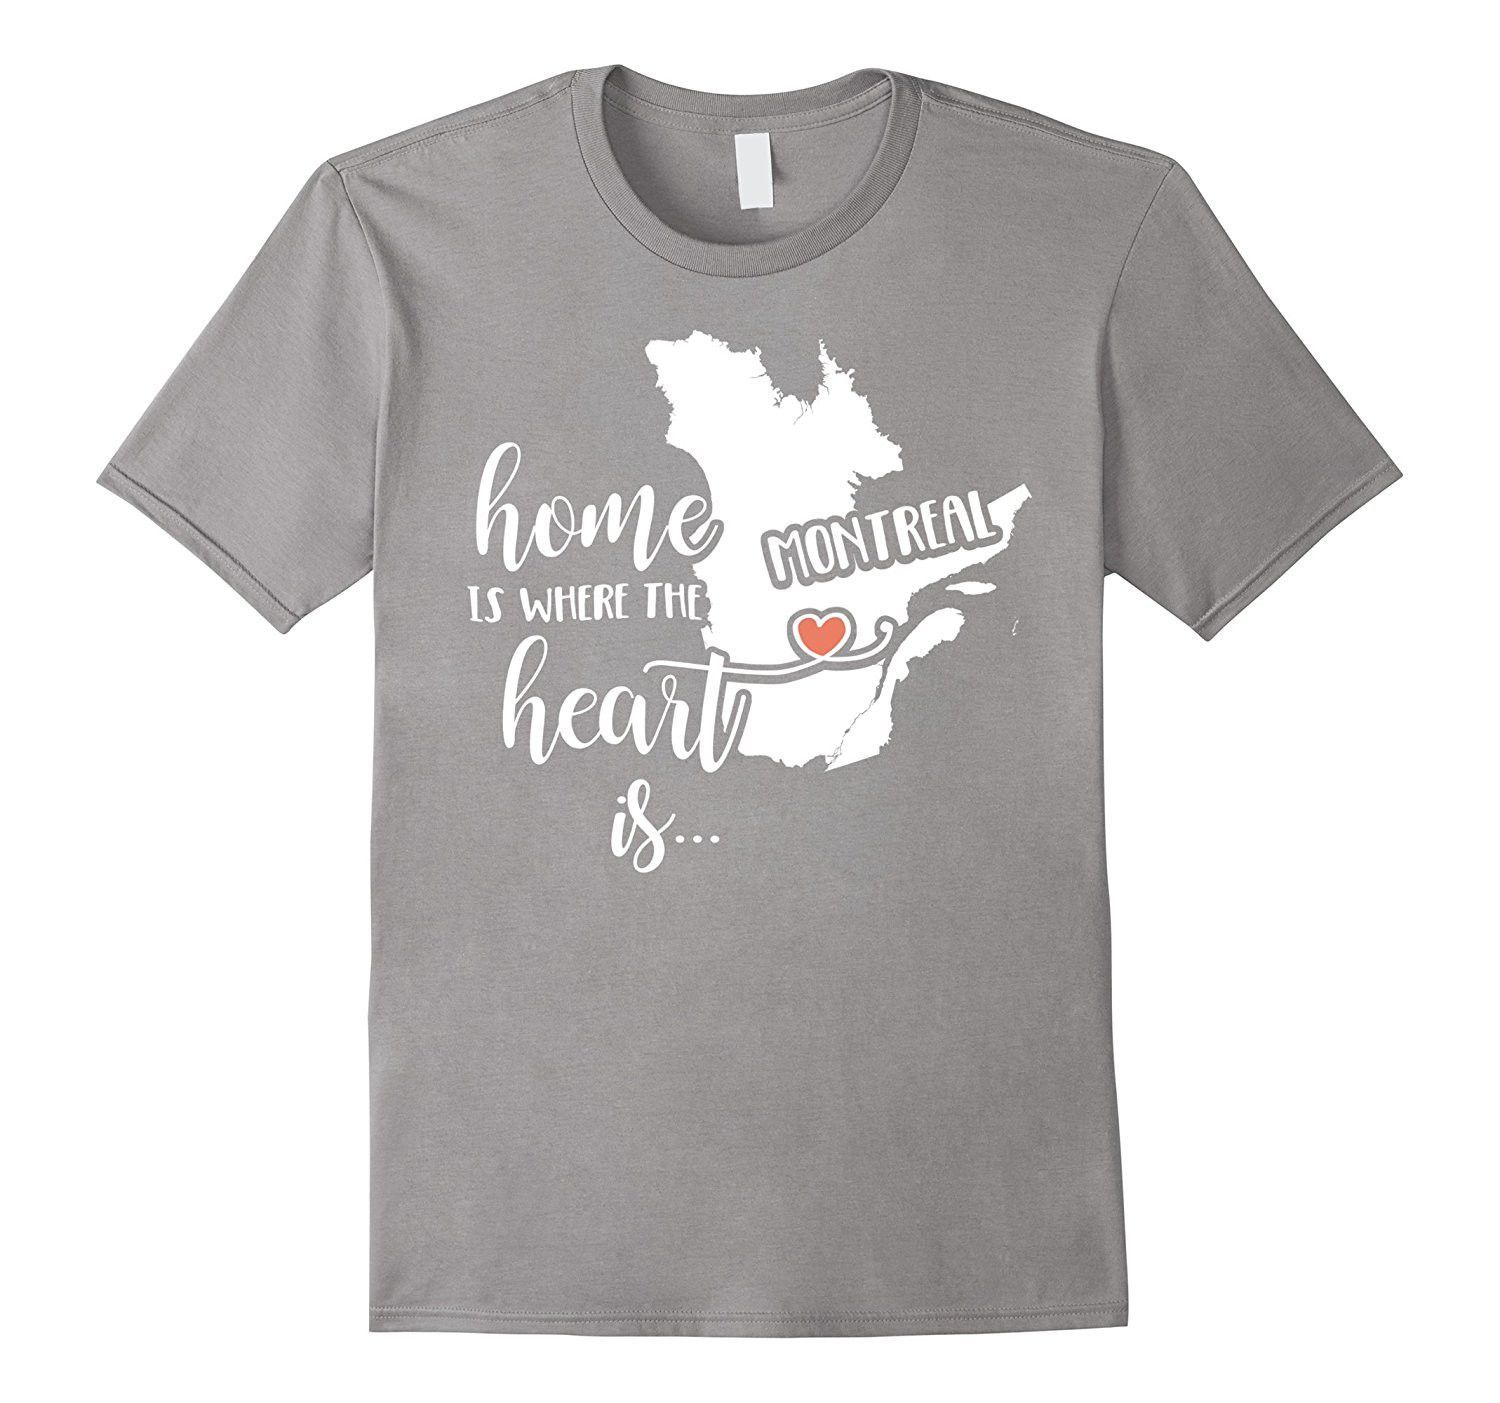 Montreal home t shirt home is where the heart is heather grey montreal home t shirt home is where the heart is negle Images